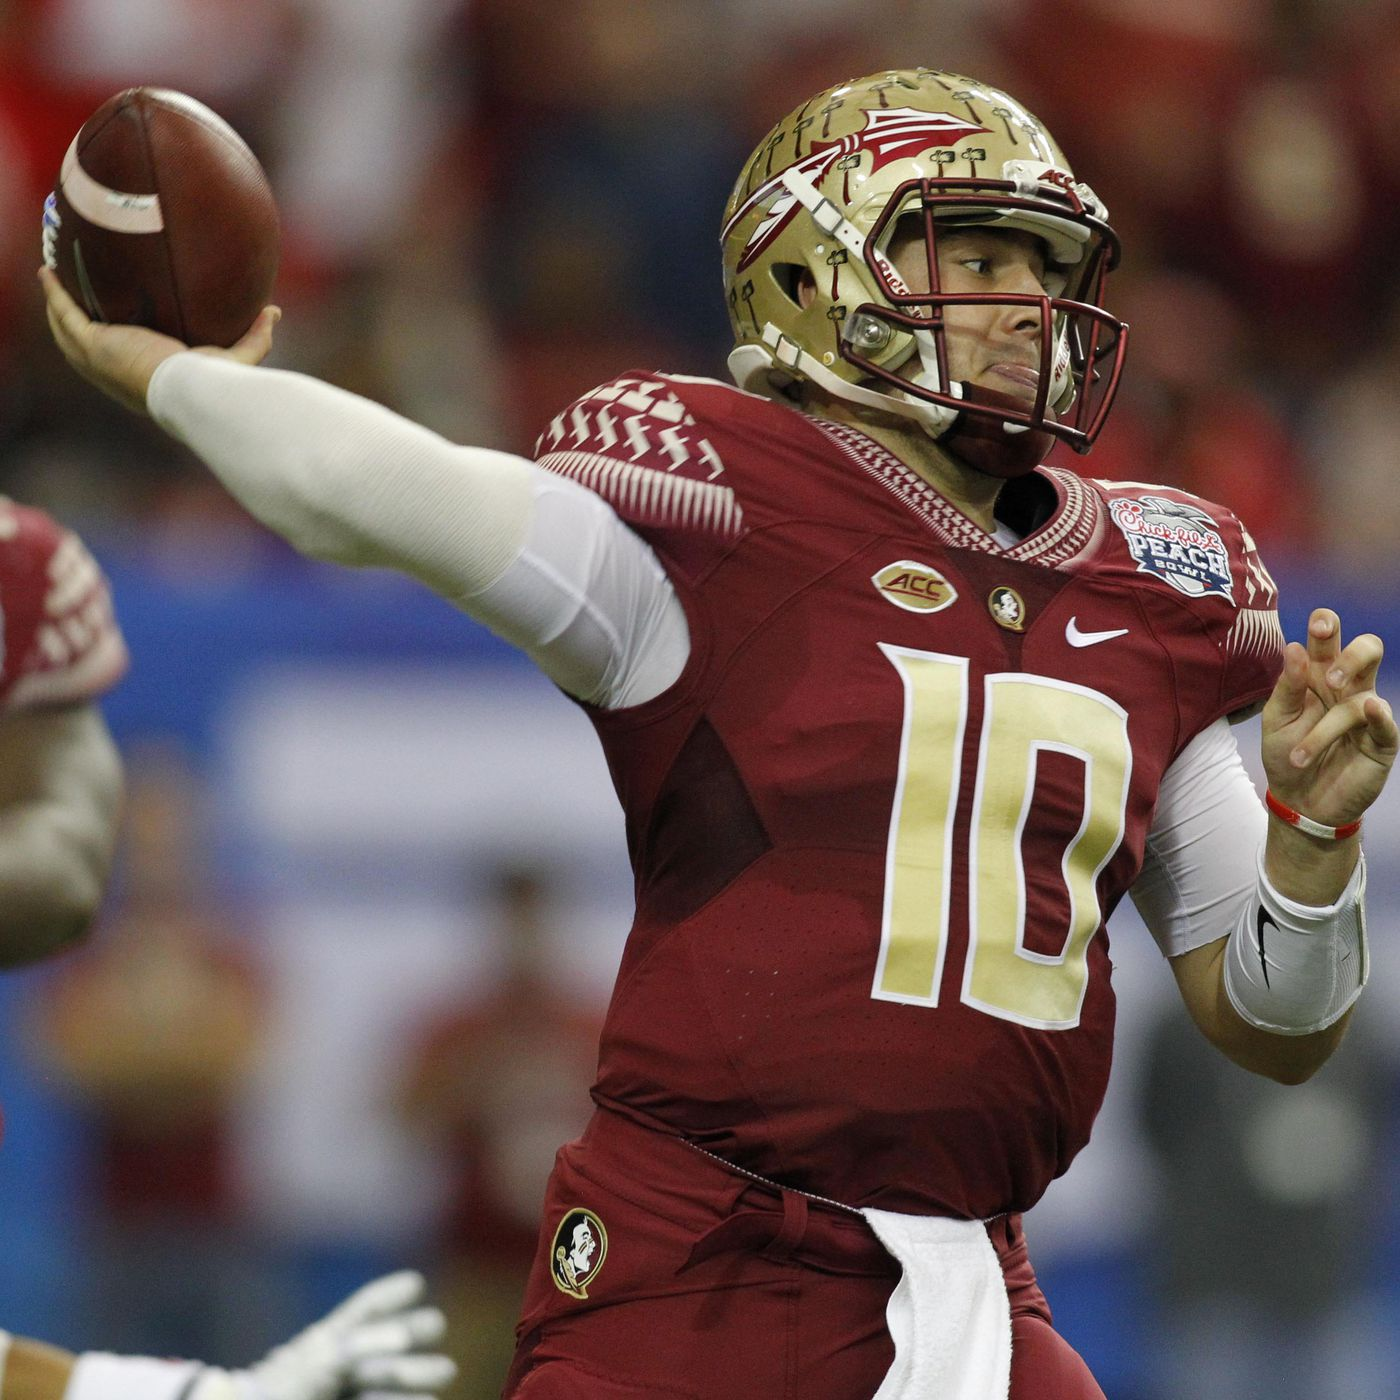 Peach bowl houston vs florida state betting 1-3-2-6 system of betting